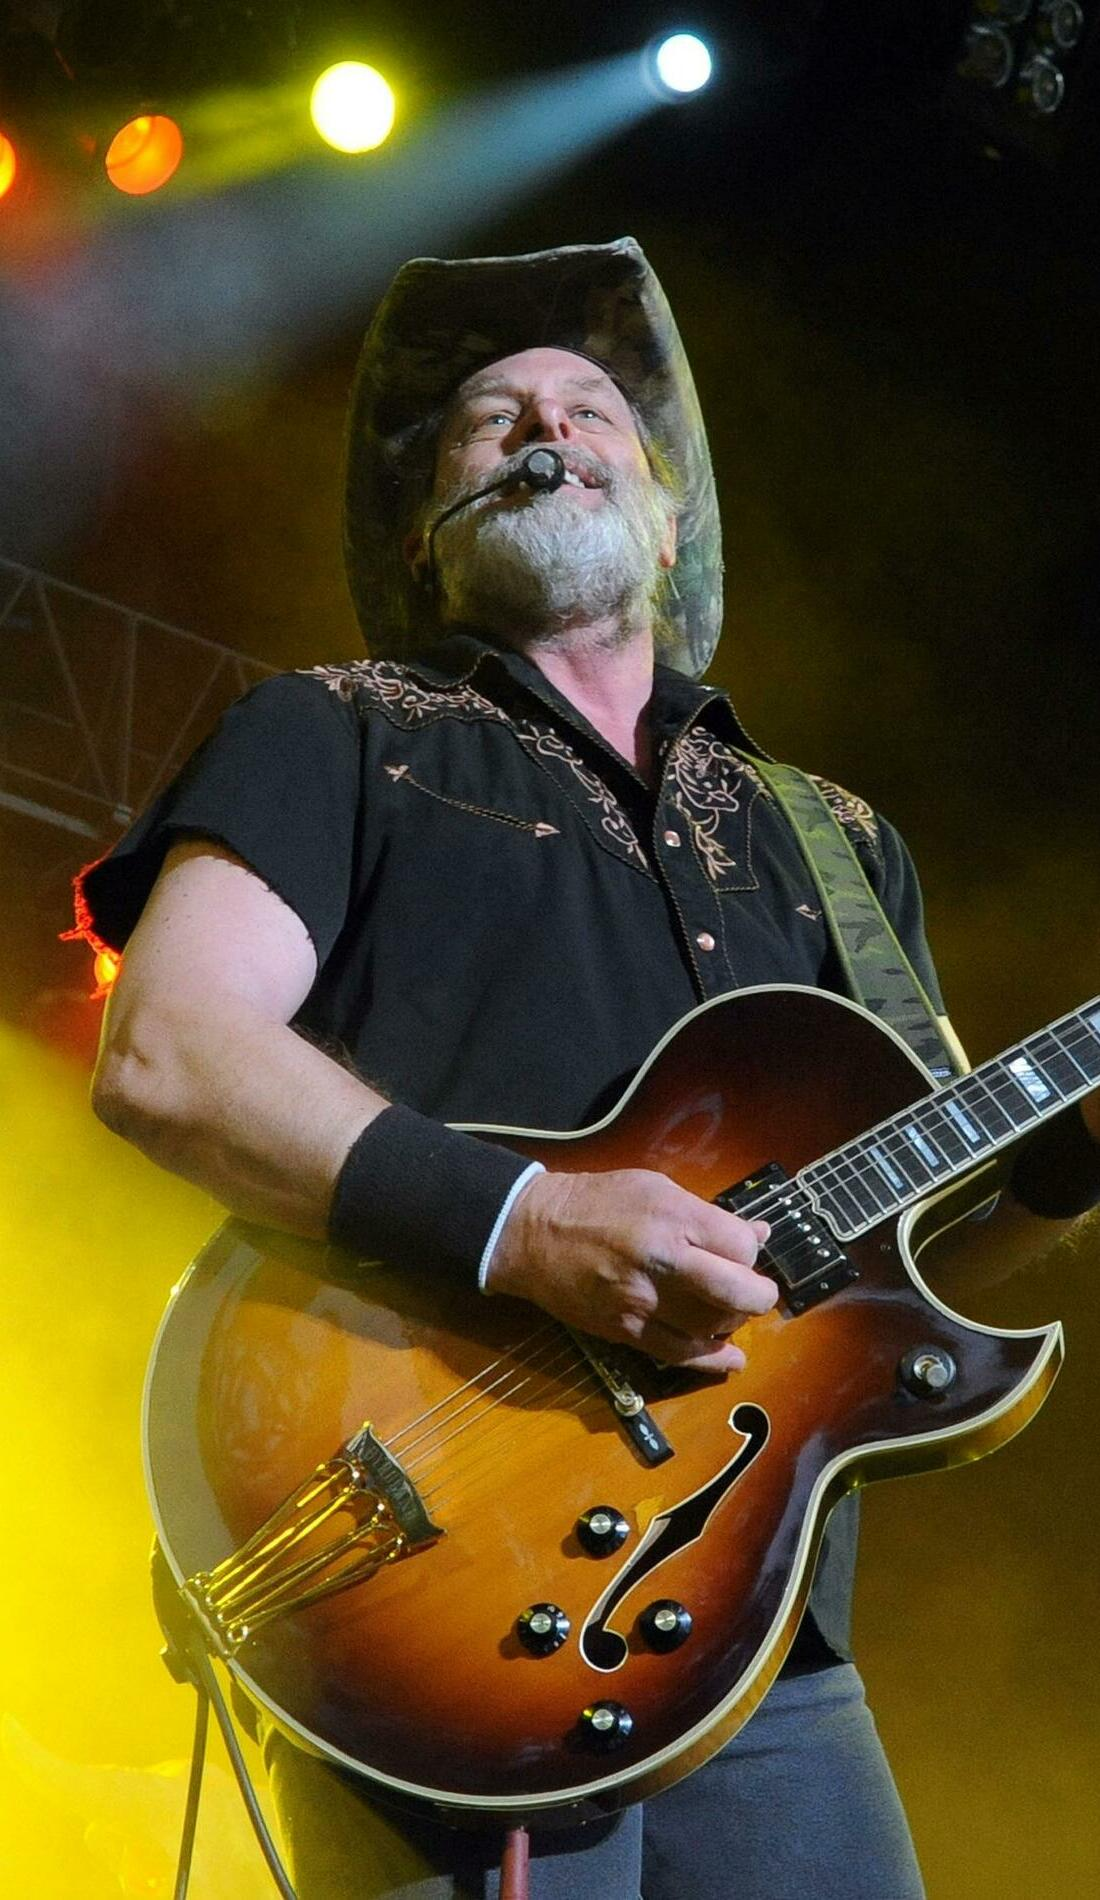 A Ted Nugent live event